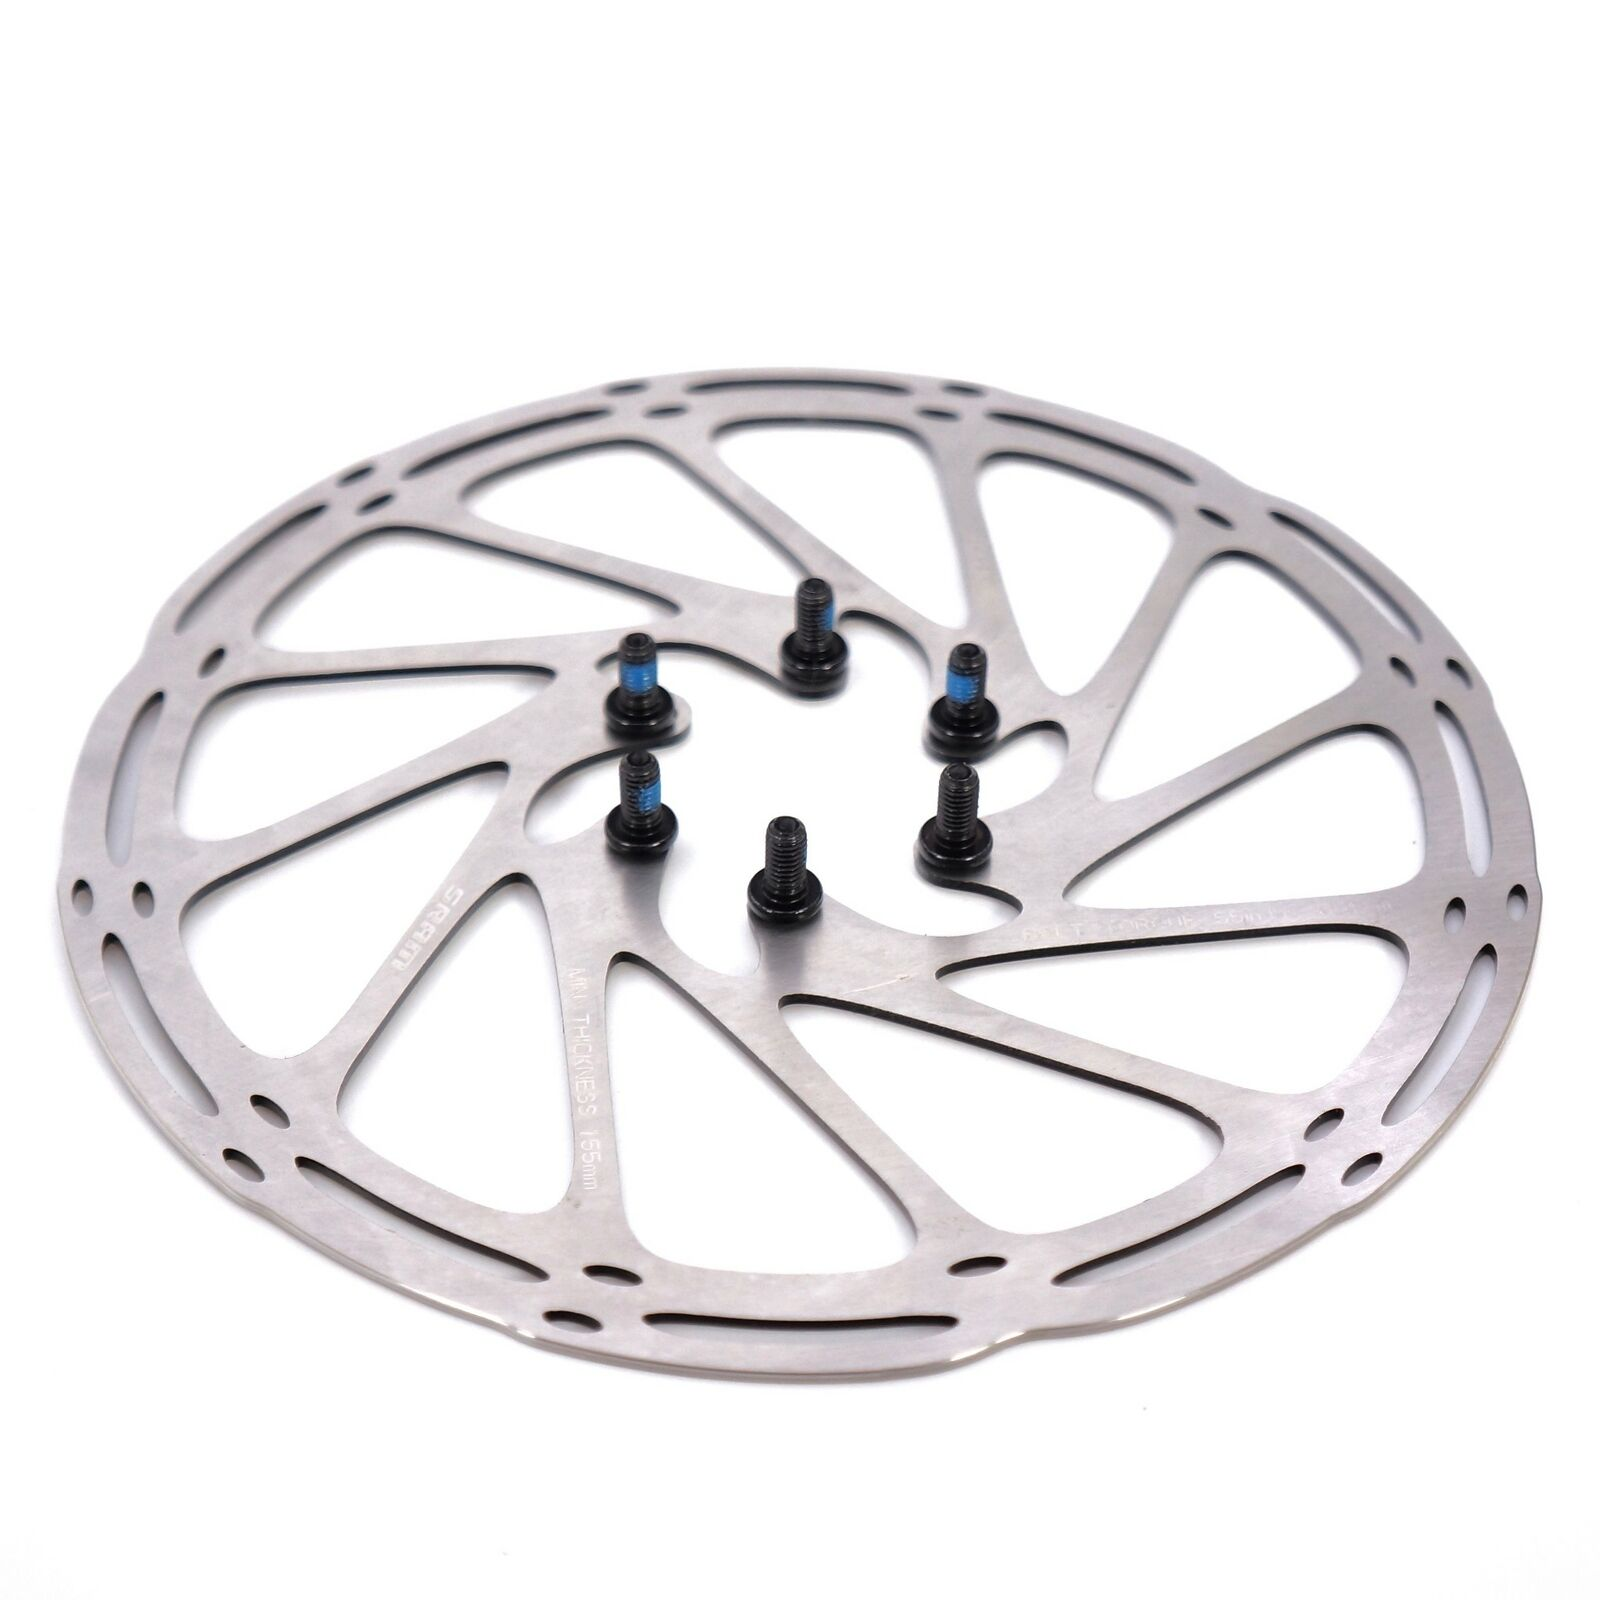 160mm 180mm MTB Mountain Road Bike Bicycle 6-Bolt Centerline Steel Brake Disc